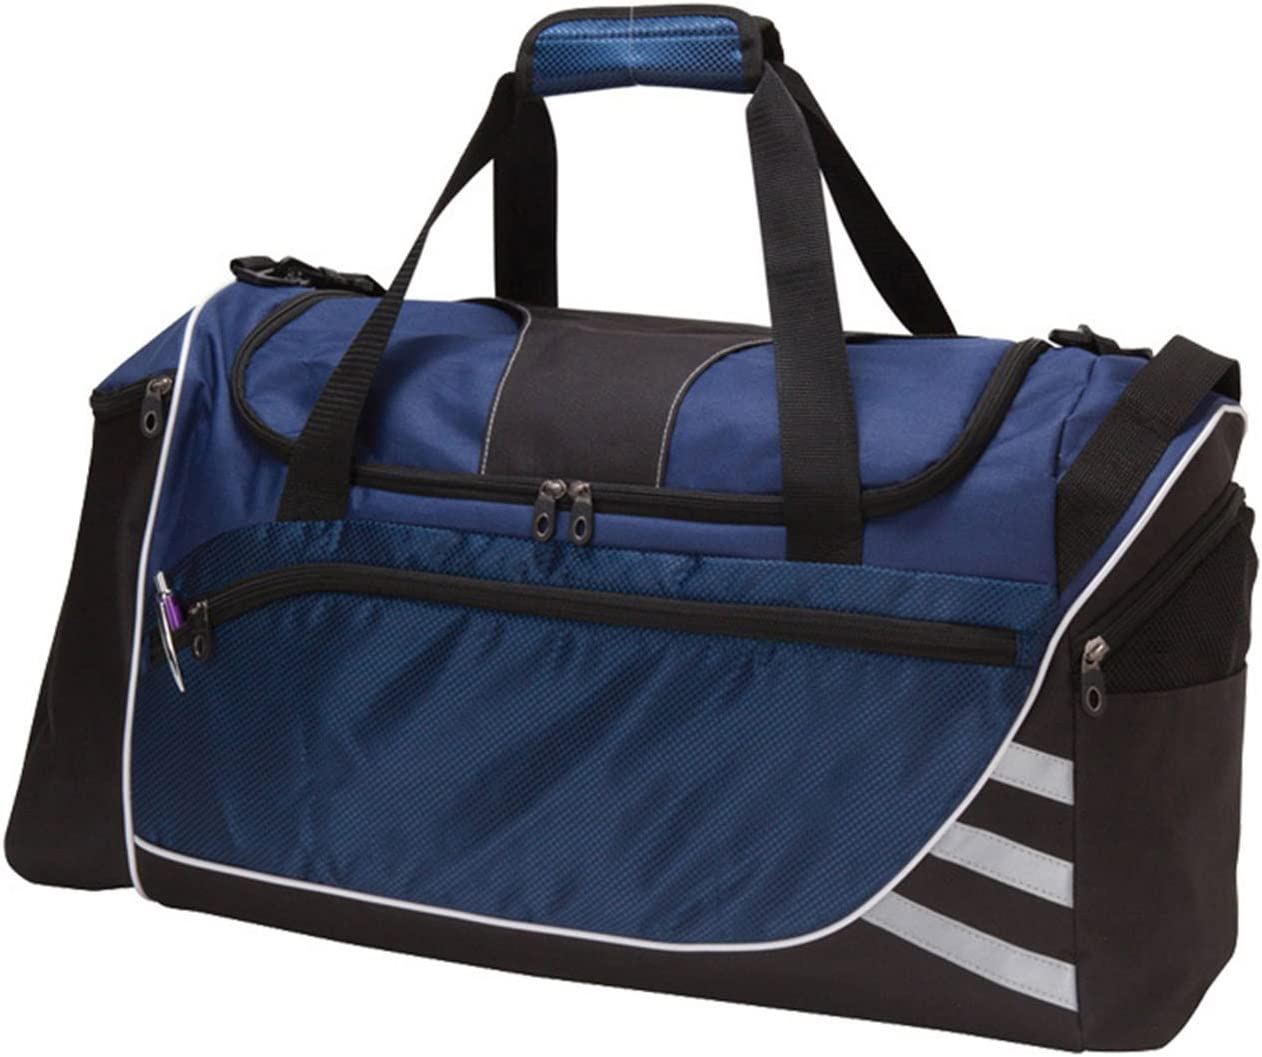 18inch Navy Blue Lightweight Crossfit Gym Bag TwoTone Pattern Polyester